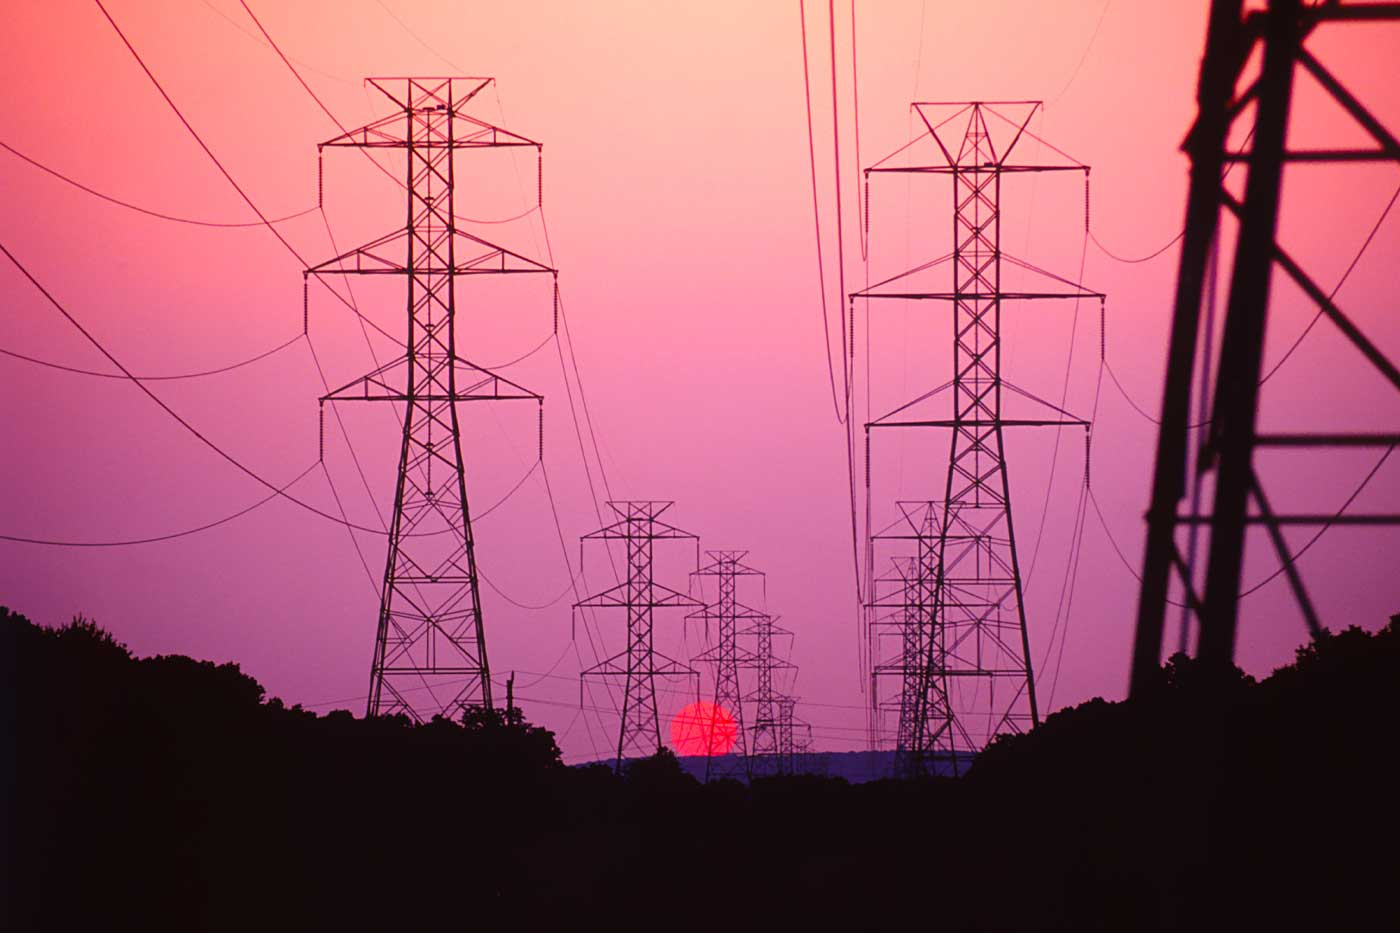 Presidential Executive Order Impacts U.S. Power System OT-IoT Security